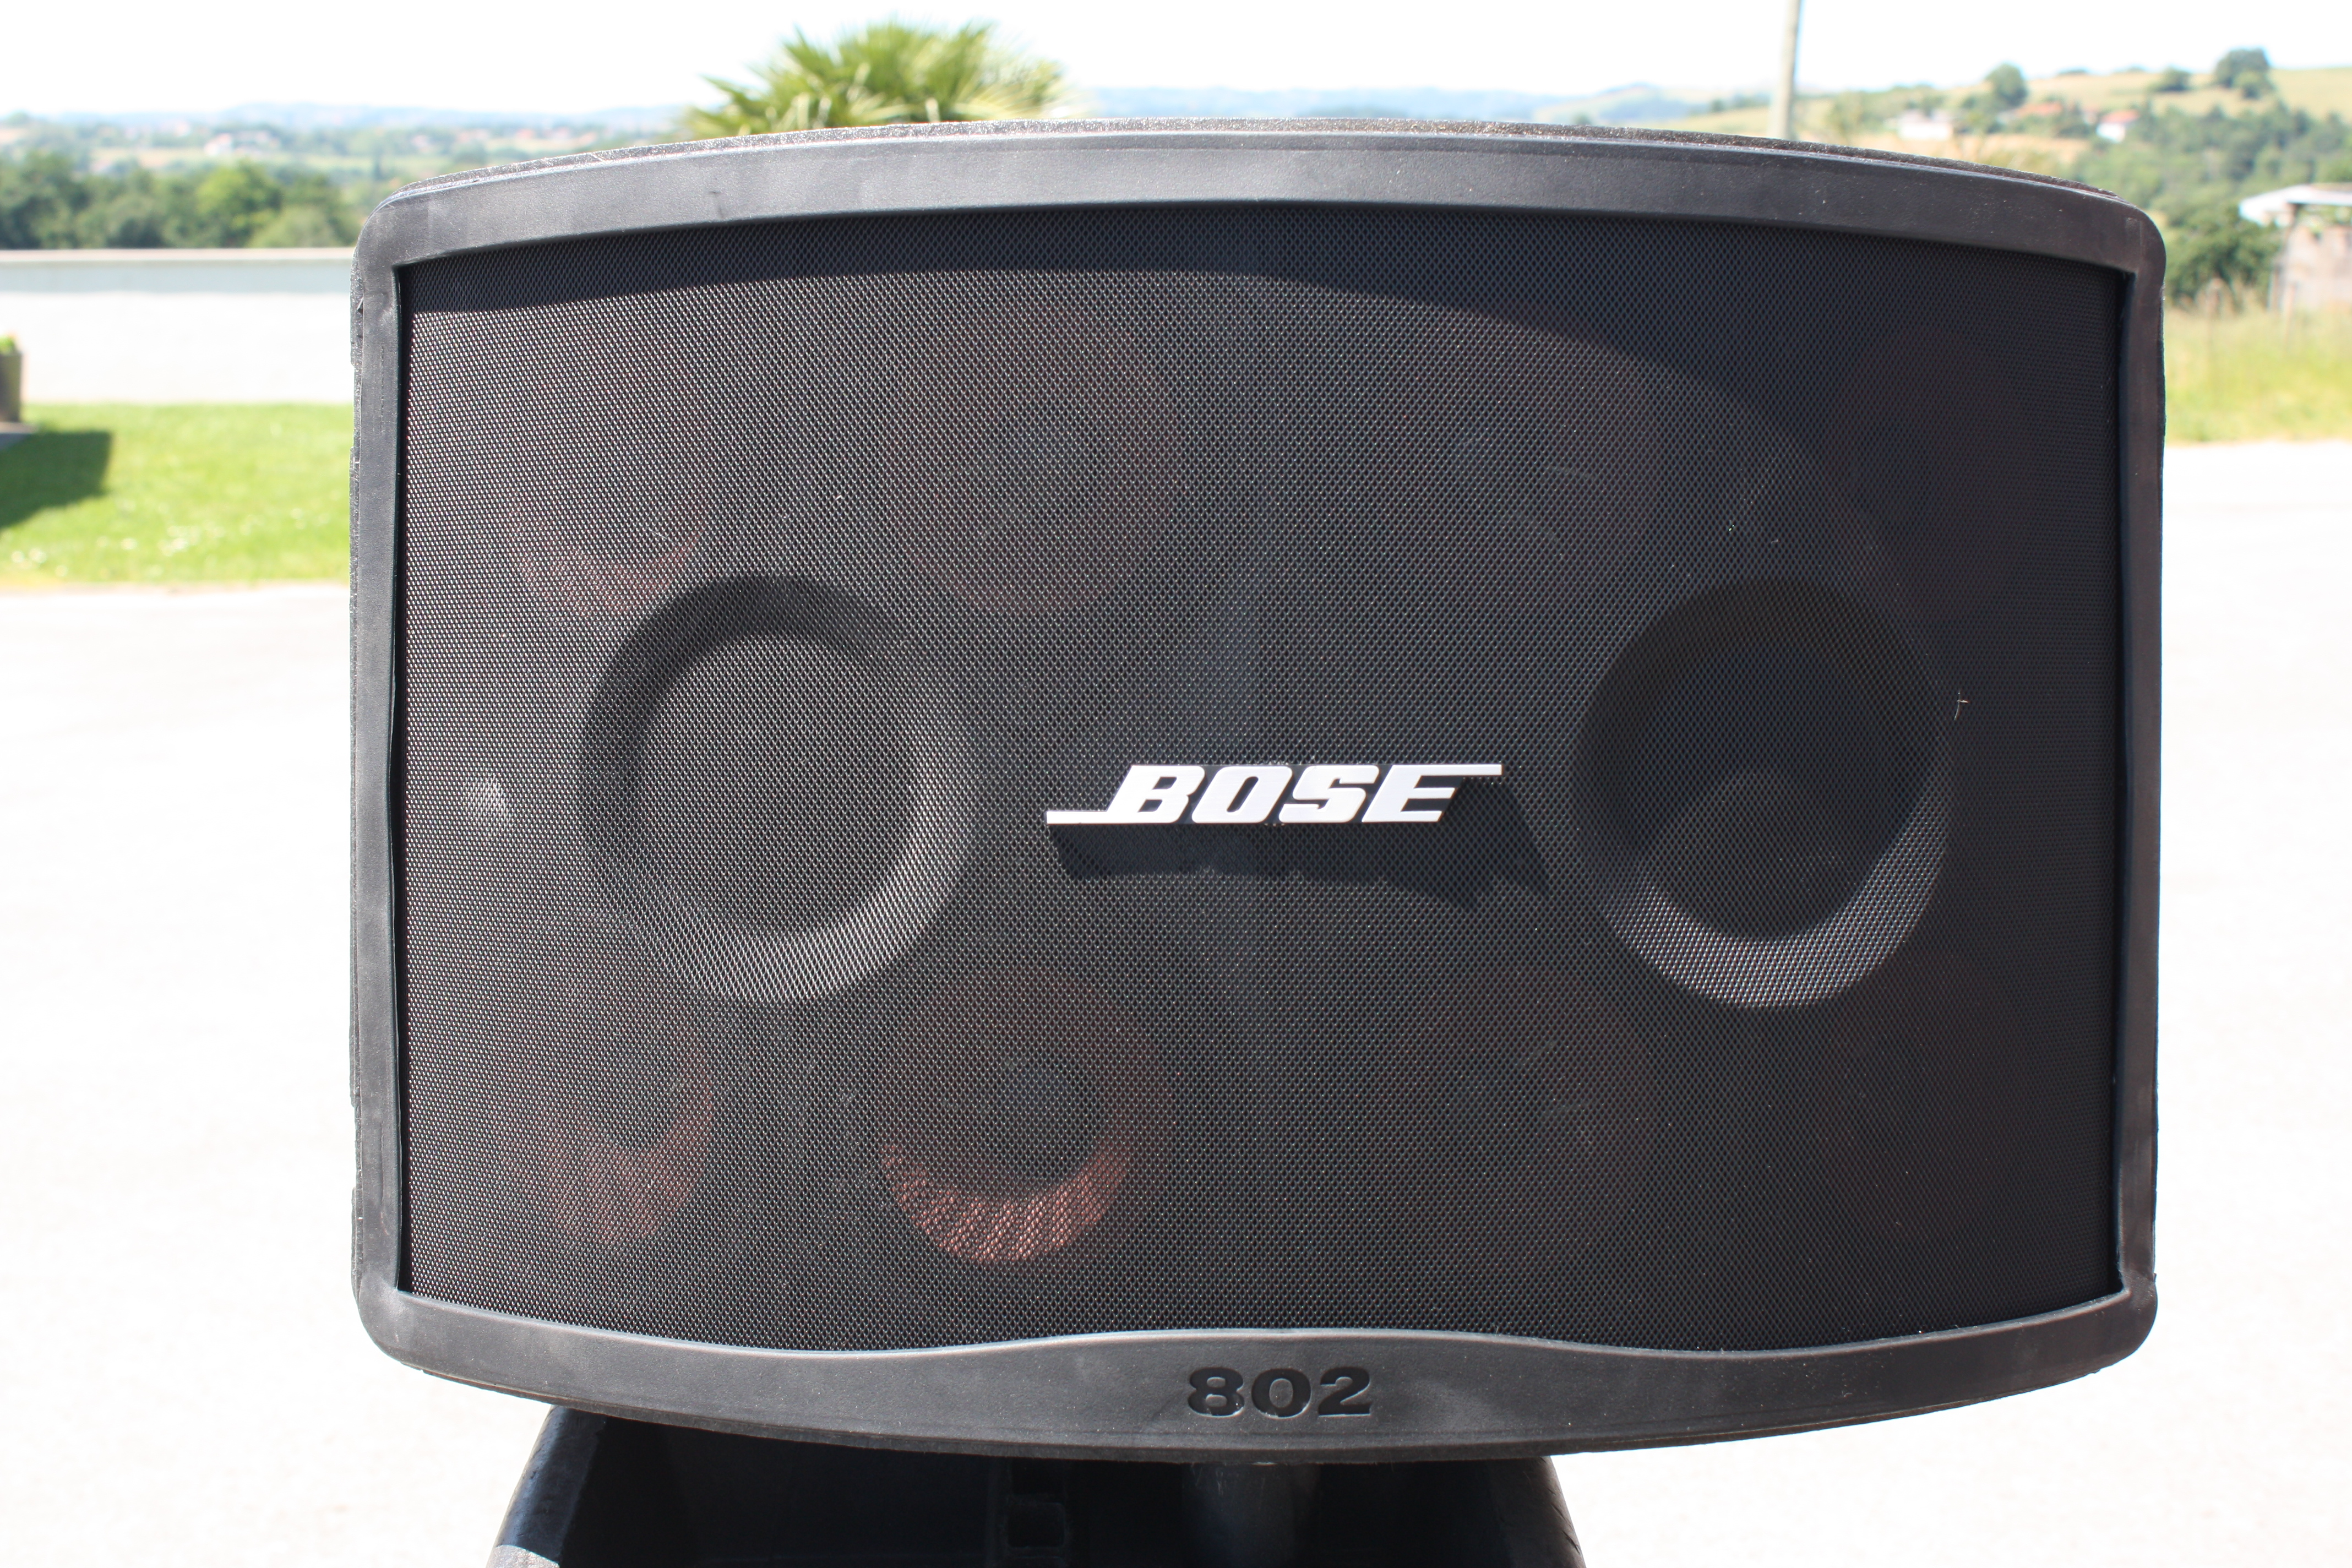 achat bose 802 series iii d 39 occasion audiofanzine. Black Bedroom Furniture Sets. Home Design Ideas